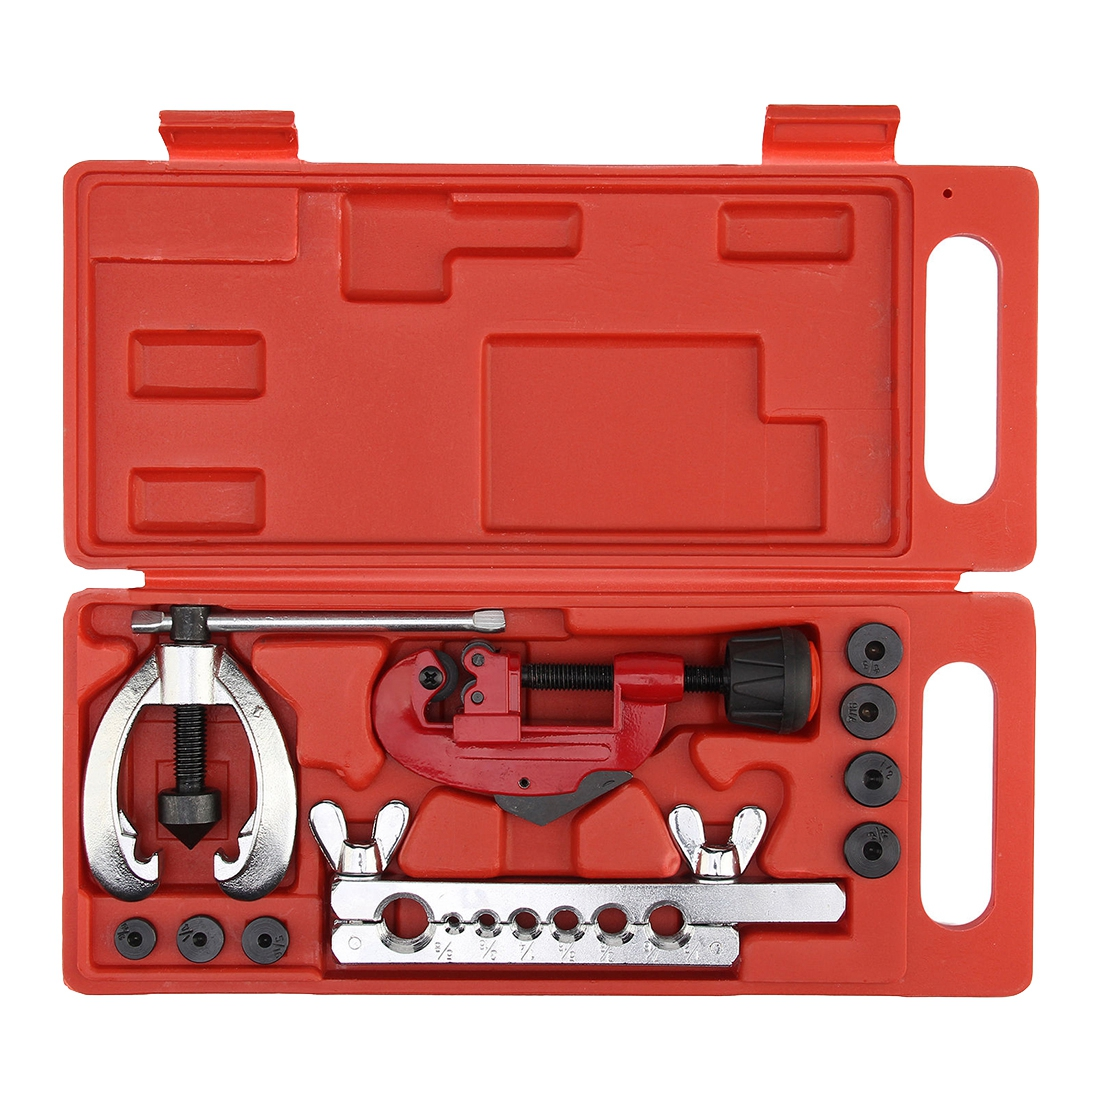 Copper Brake Fuel Pipe Repair Double Flaring Dies Tool Set Clamp Kit Tube Cutter Drop Shipping